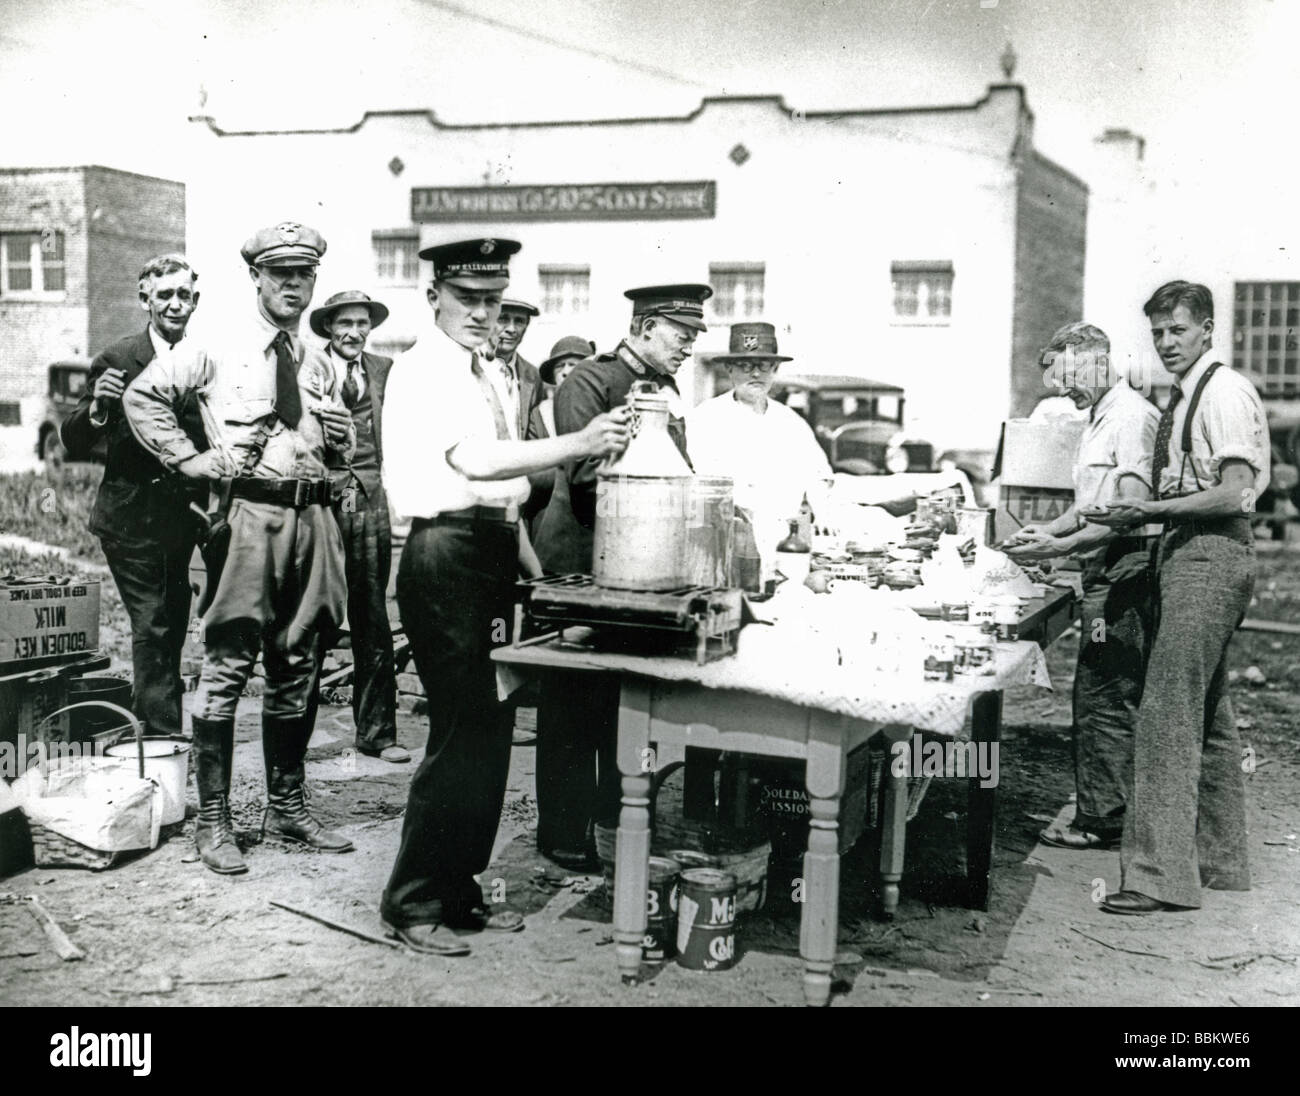 Free Food And Soup Kitchen In The Great Depression